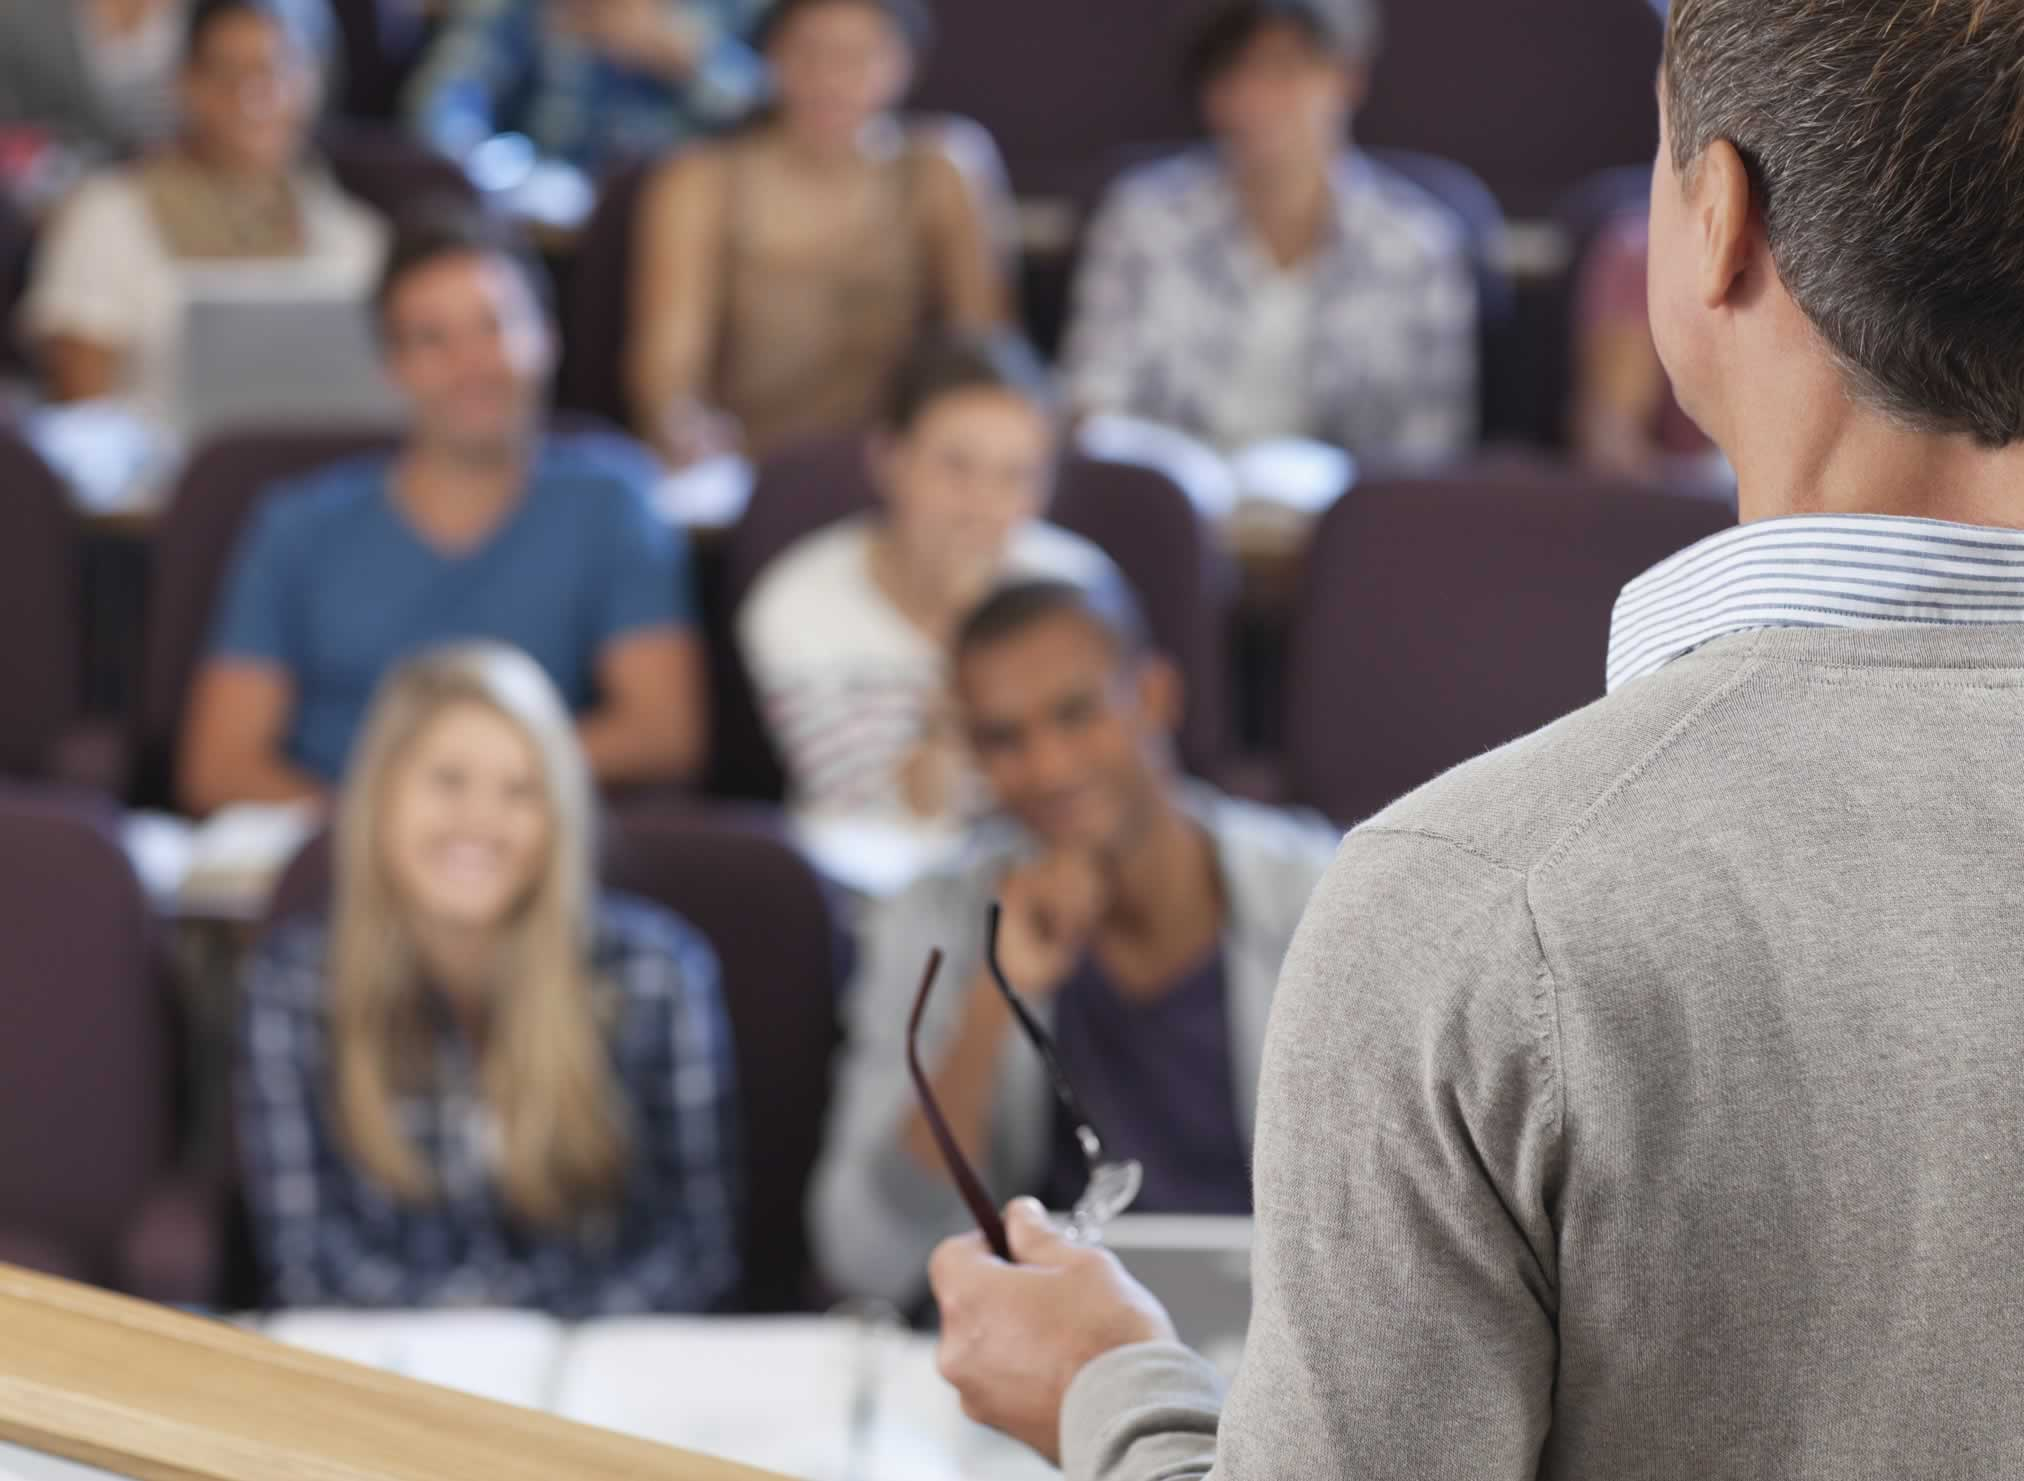 College students listen to their professor during a lecture